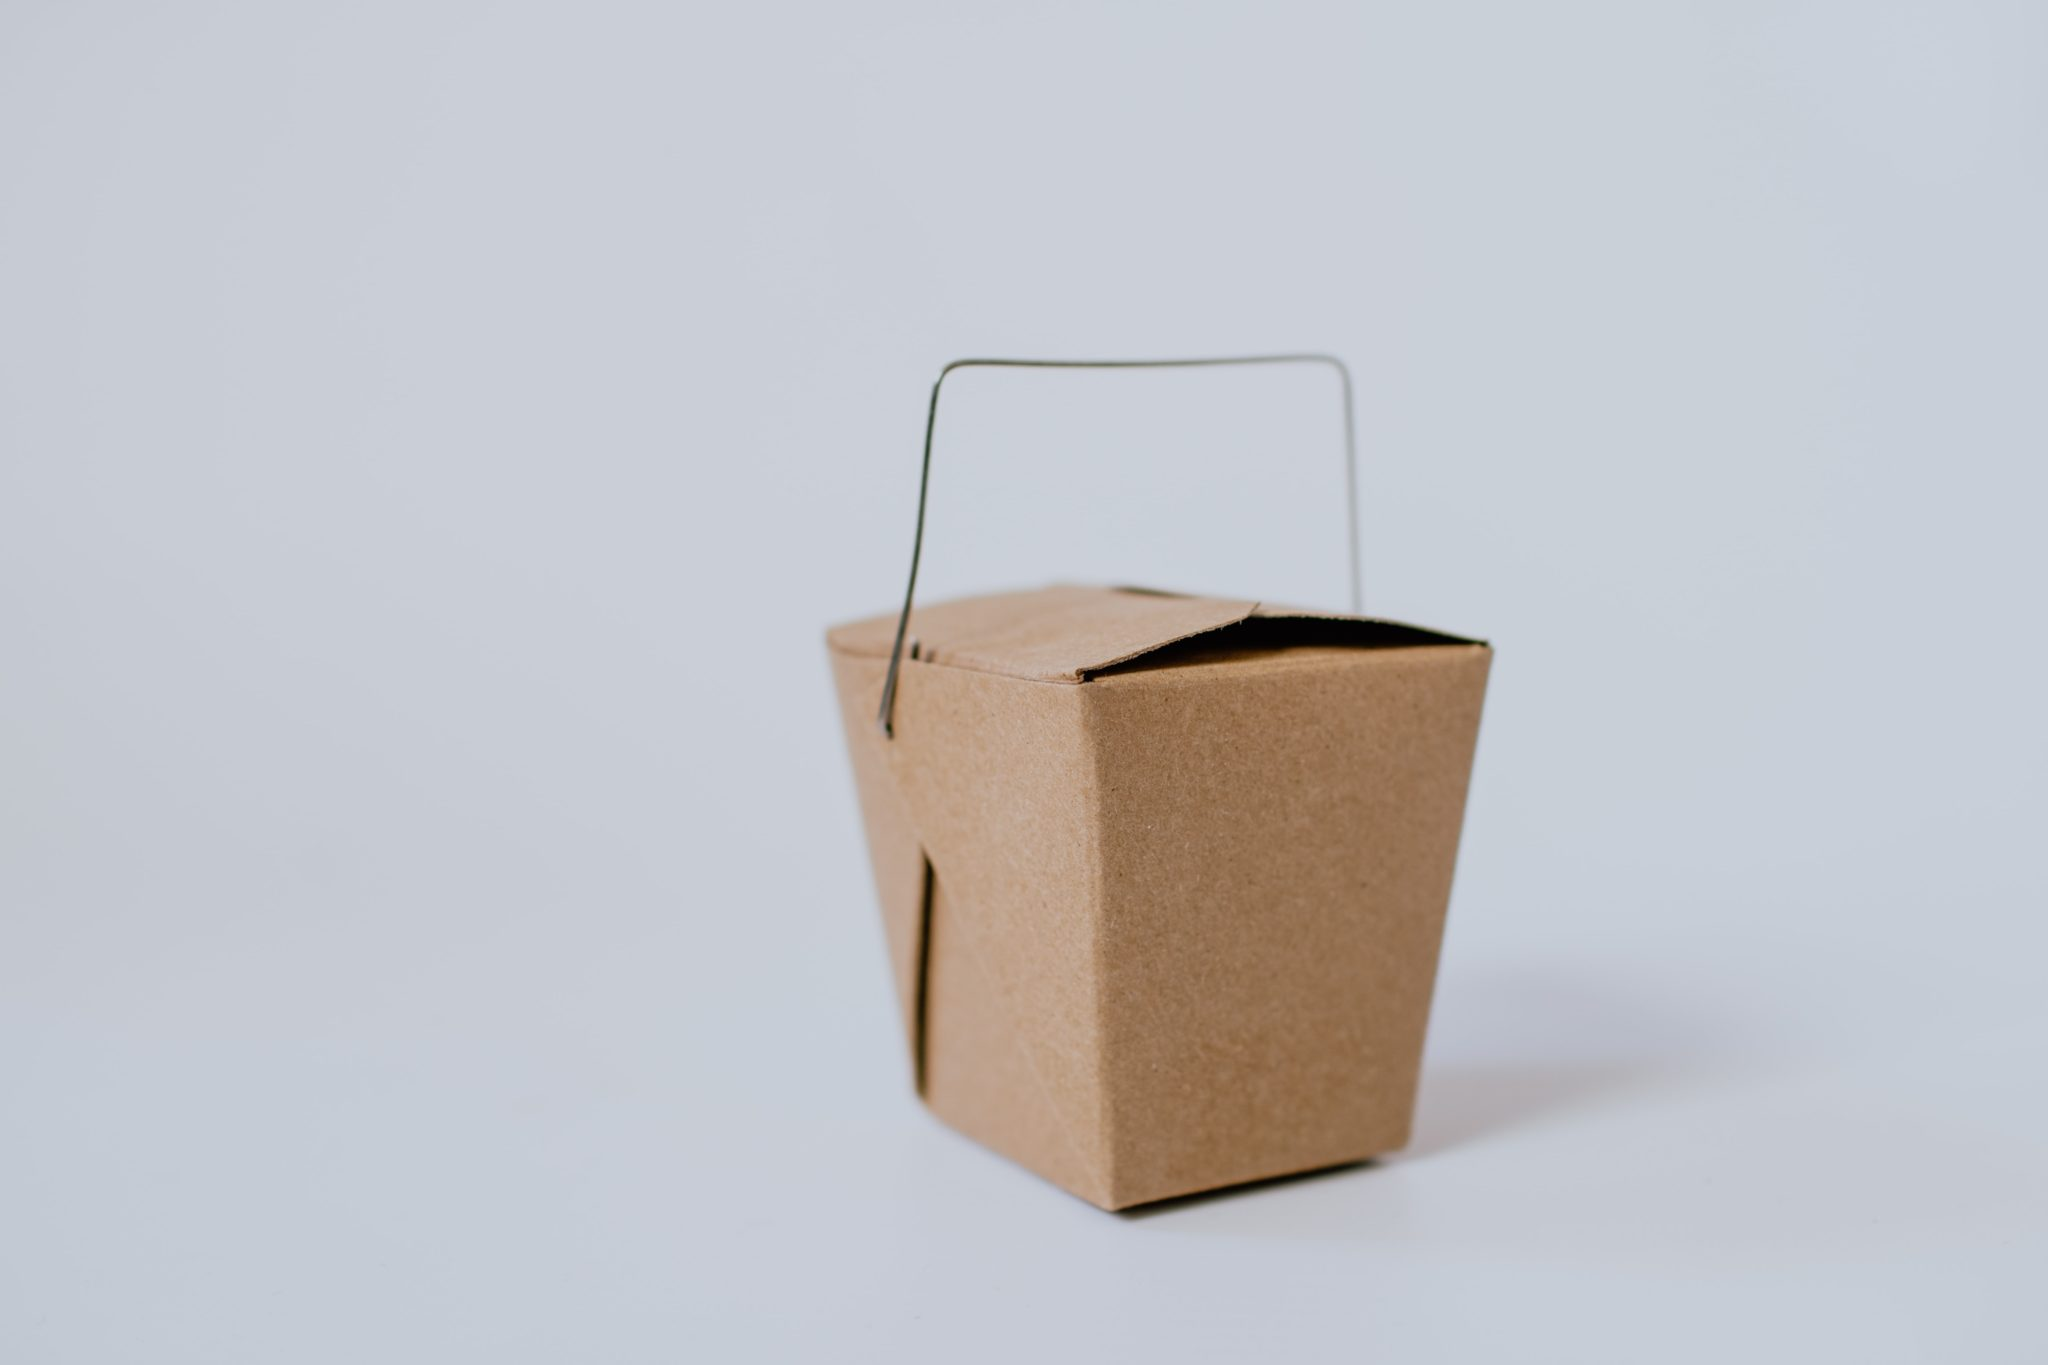 image of a brown take out box against a light grey background